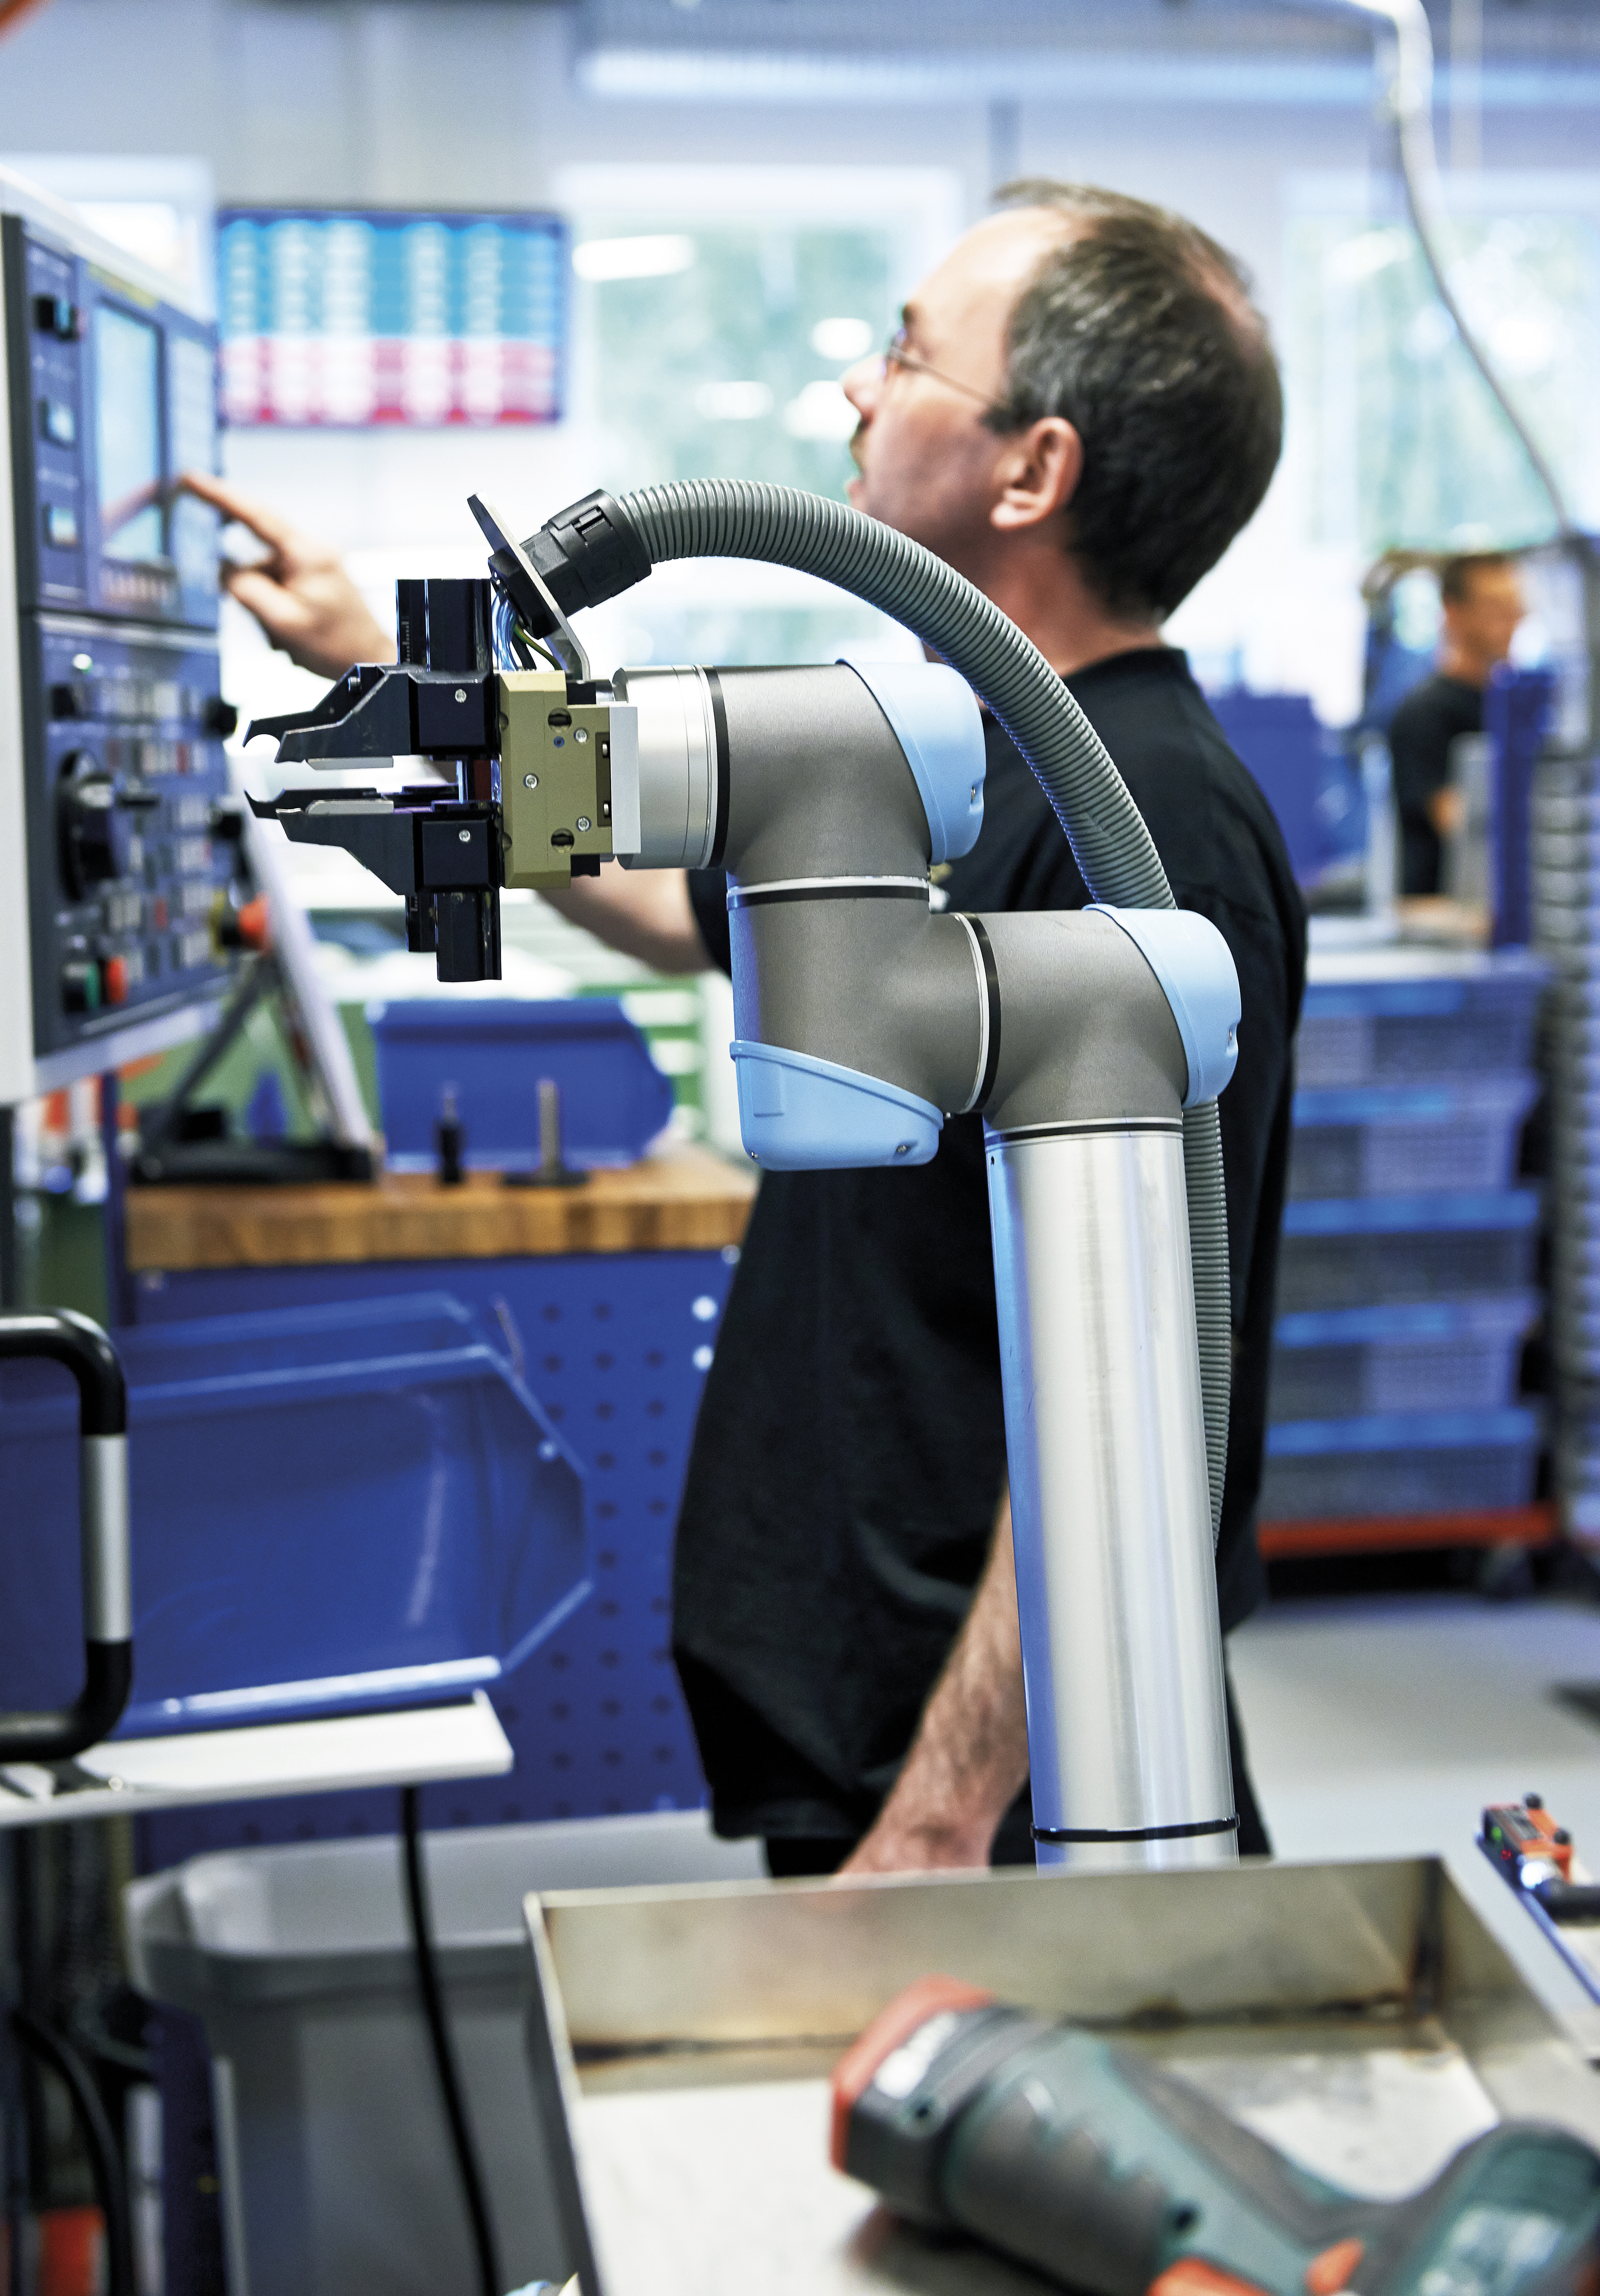 Collaborative Robots forecasted to drive accelerating growth in robotics through 2020